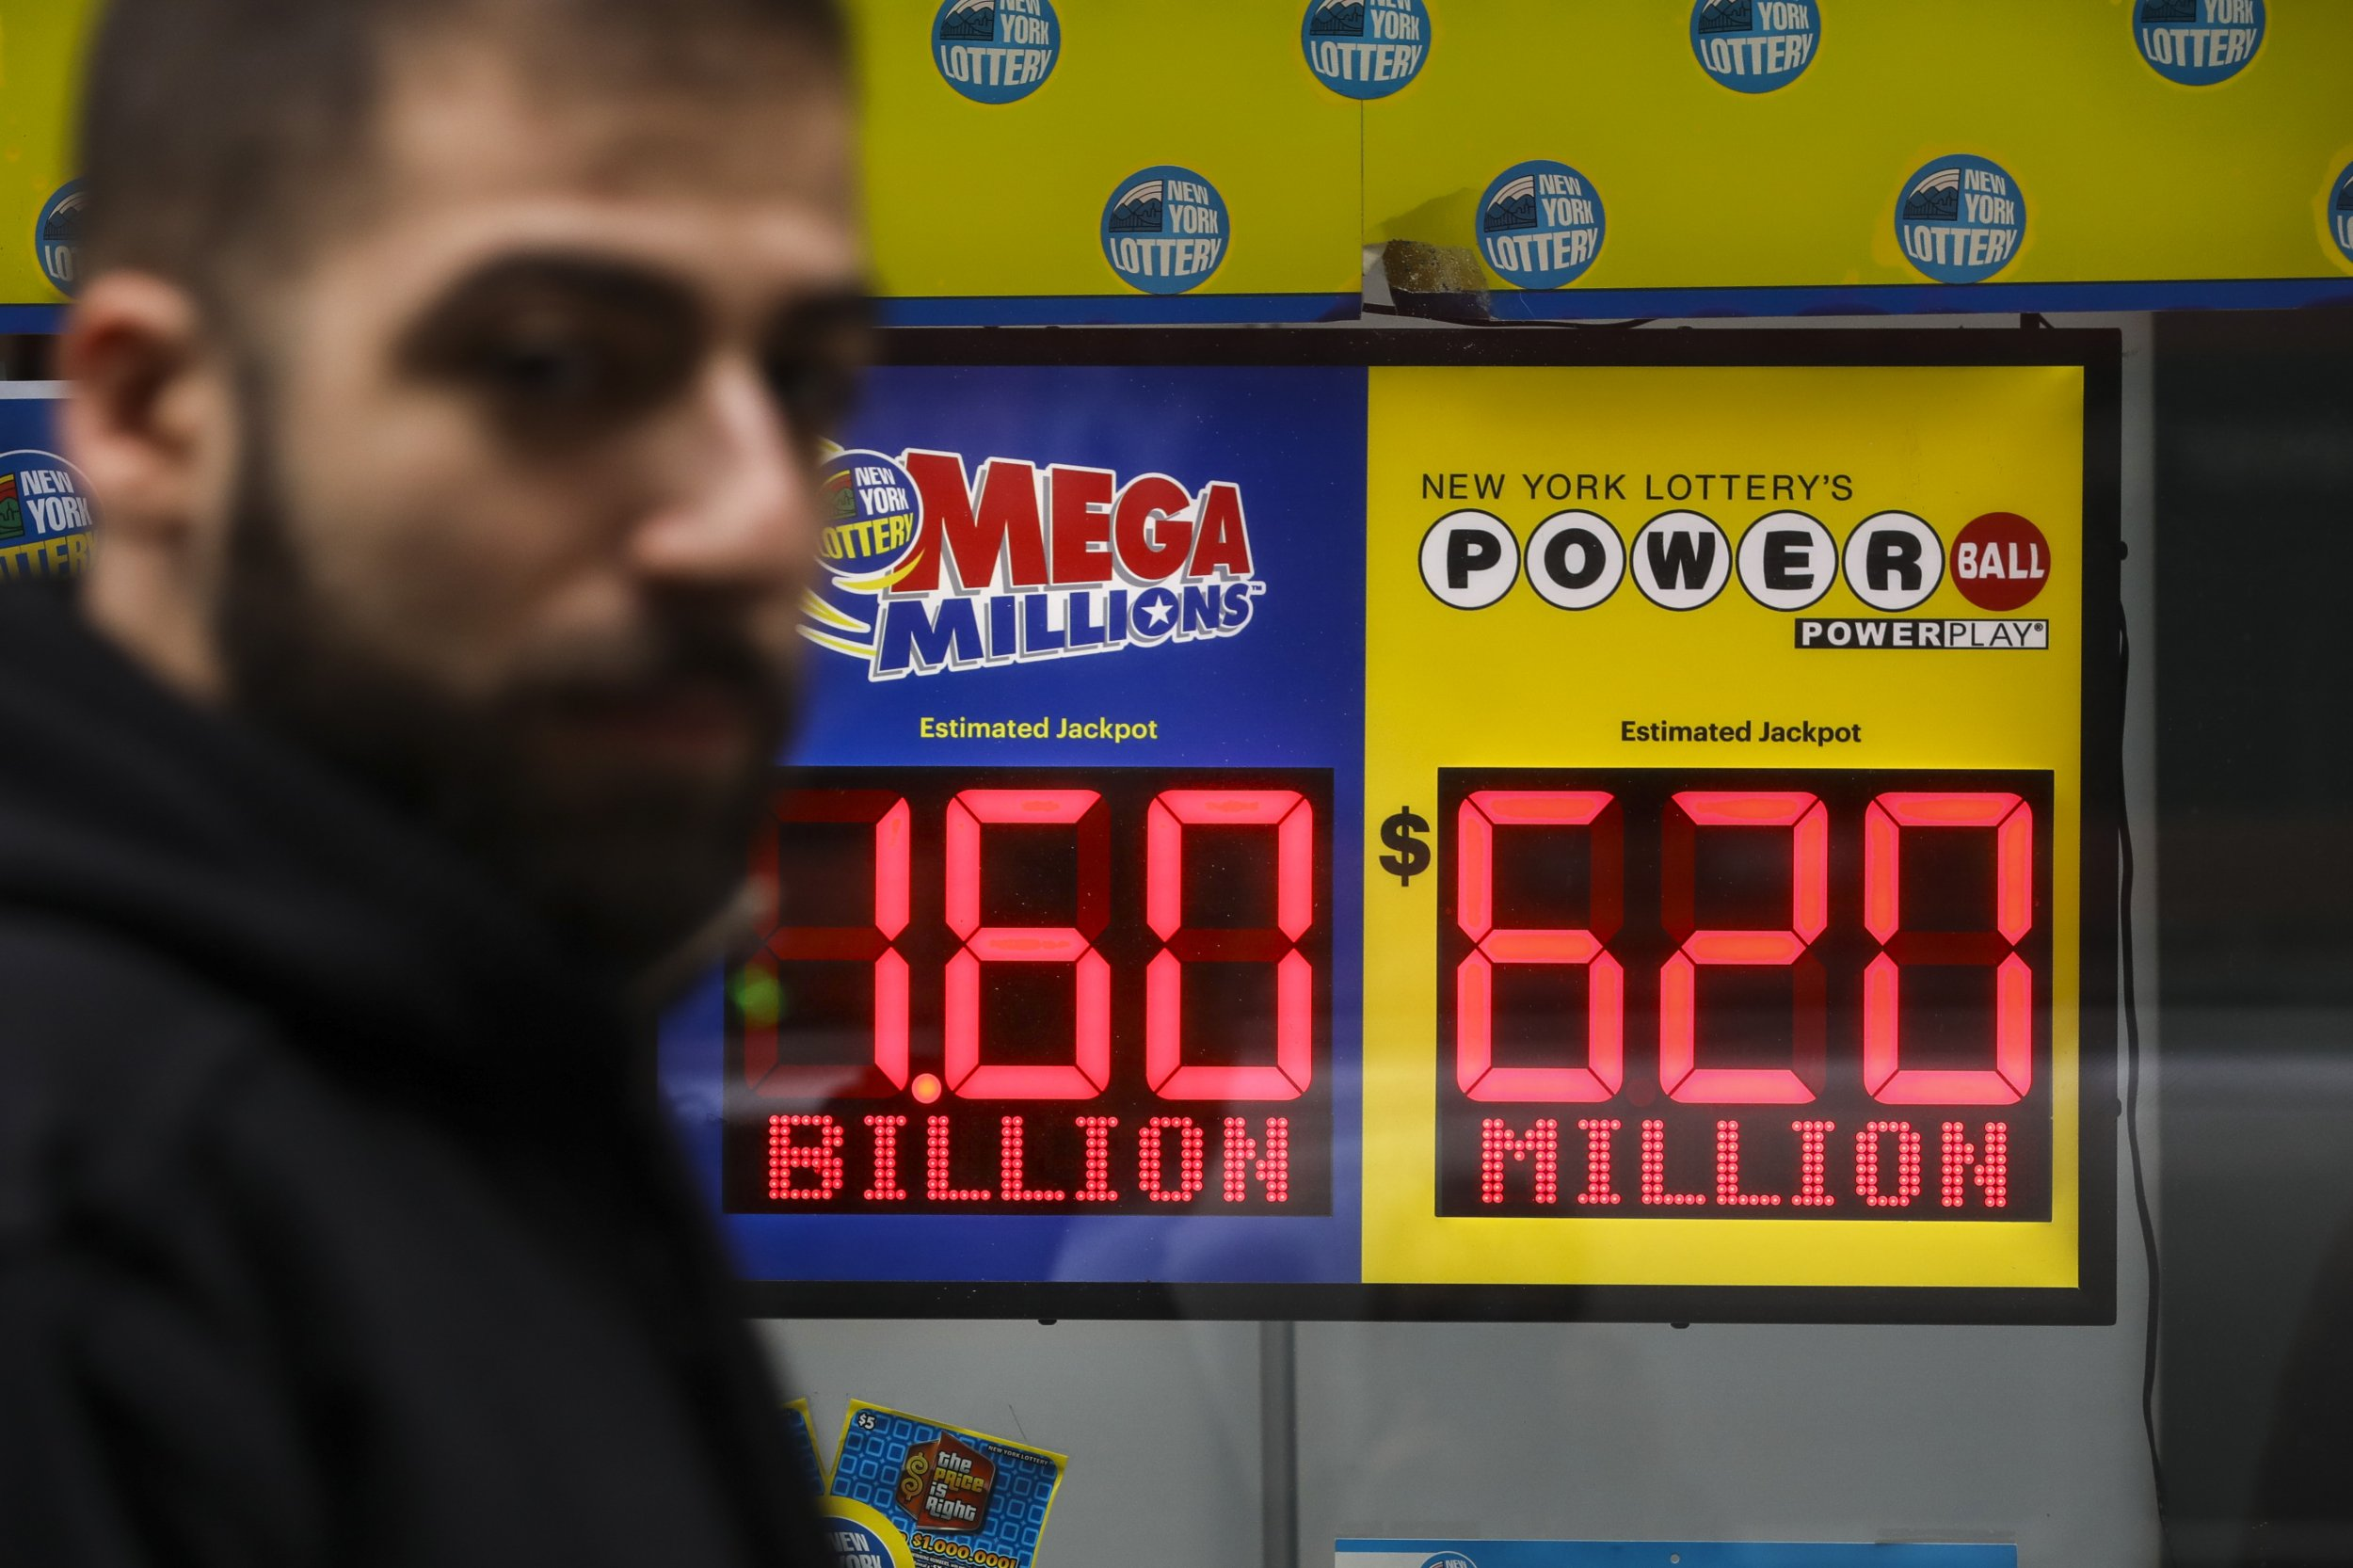 Mega Millions 1 6 Billion Jackpot Still Unclaimed Winning Ticket Sold In South Carolina